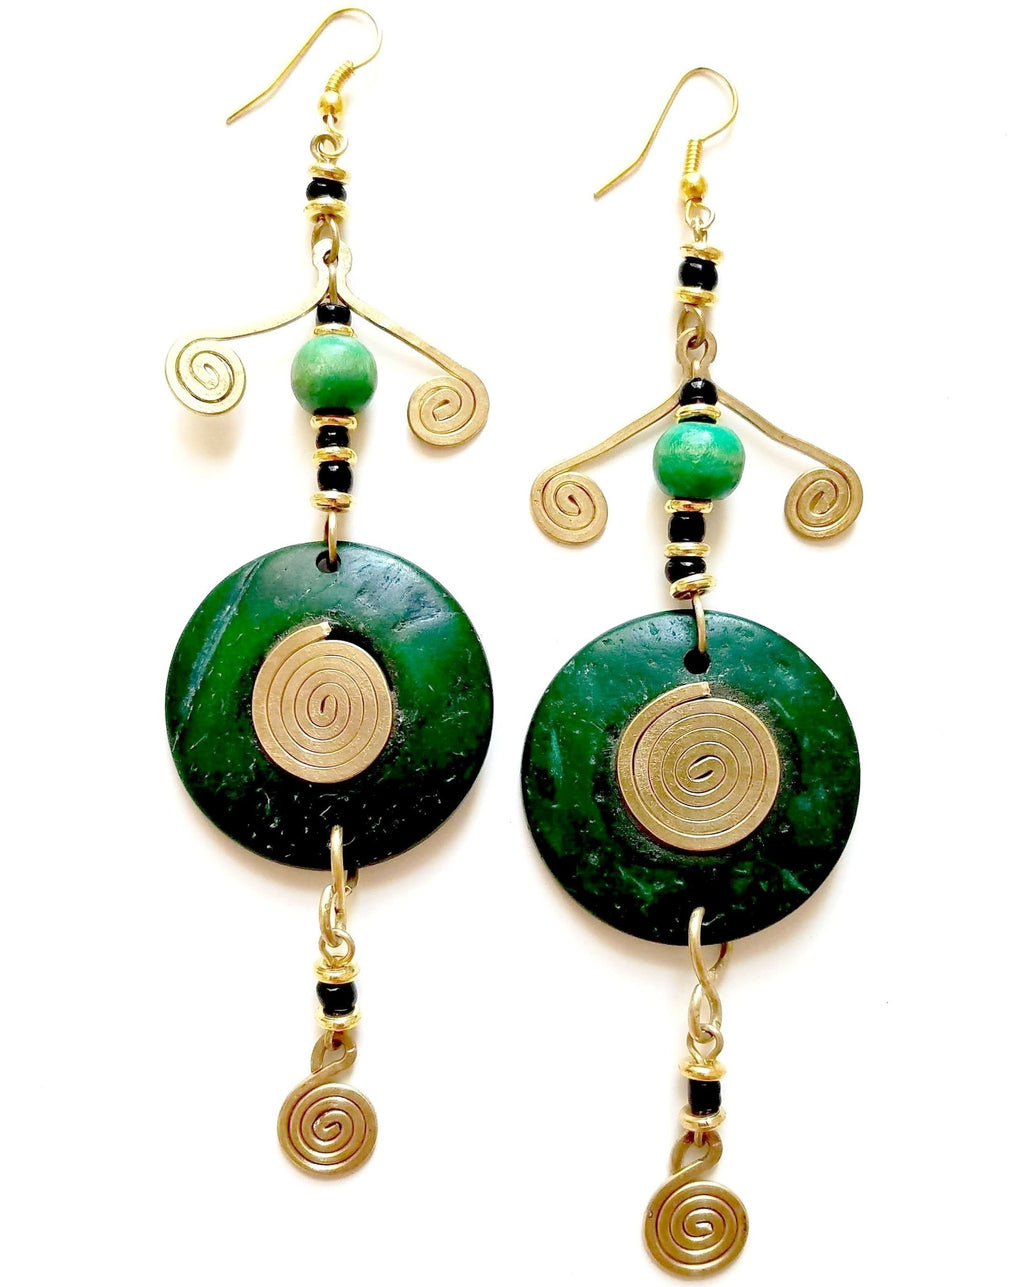 Treetop Nzete African Earrings - The Afropolitan Shop